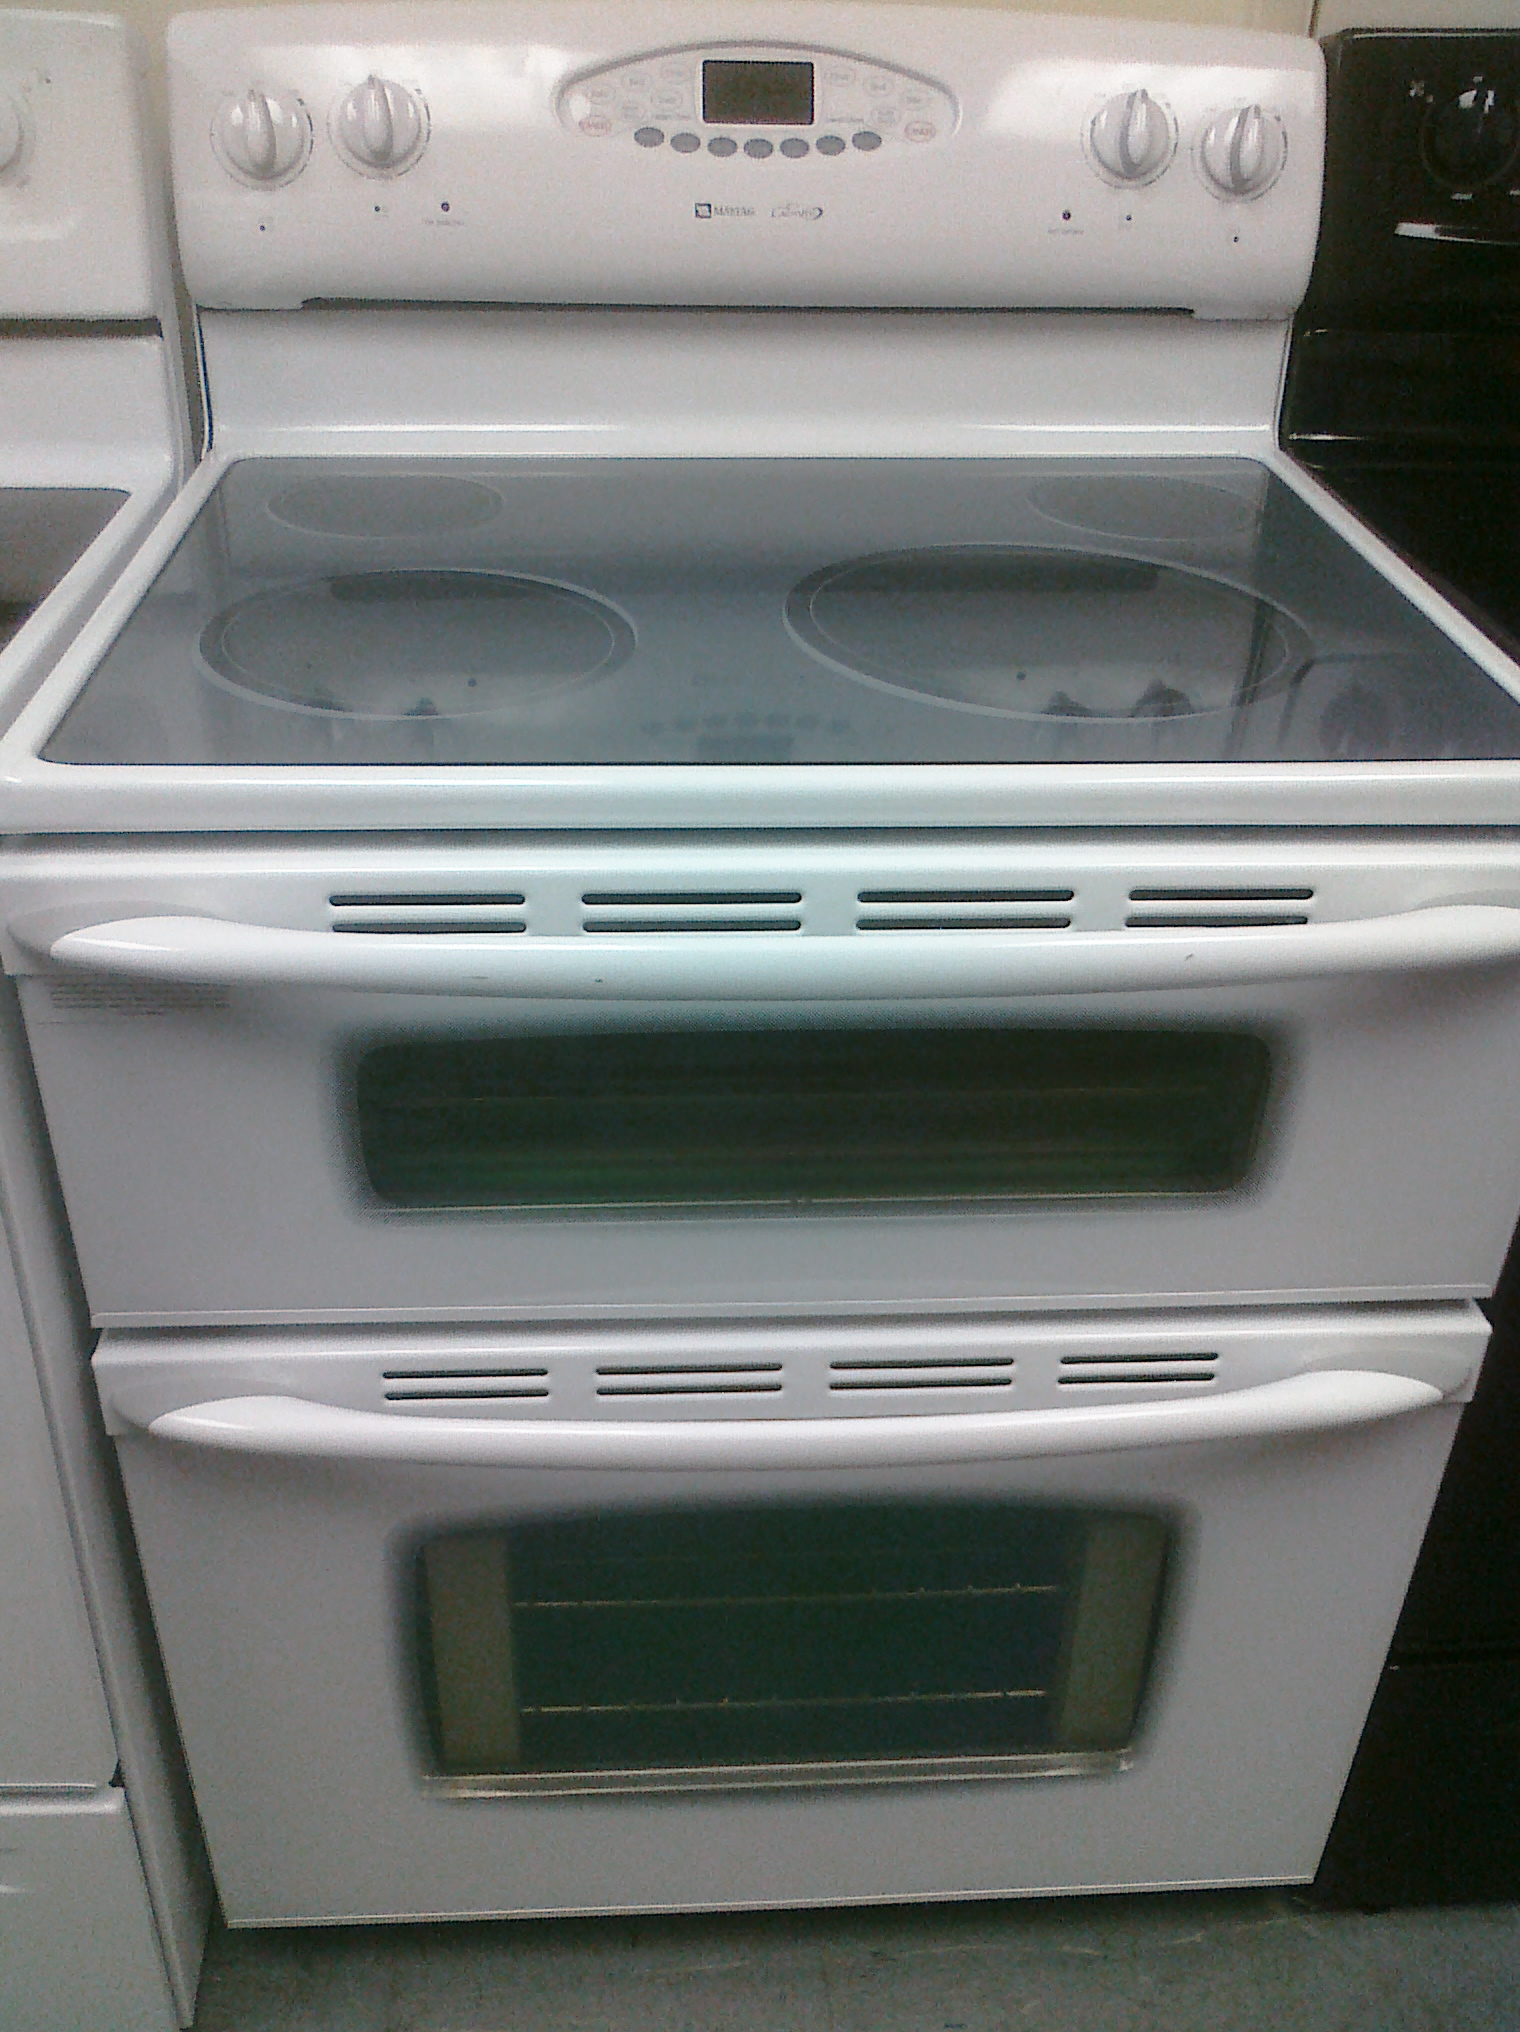 (9) Maytag MER6755AAW Gemini Freestanding Glass-Top Electric Double-Oven Range, White